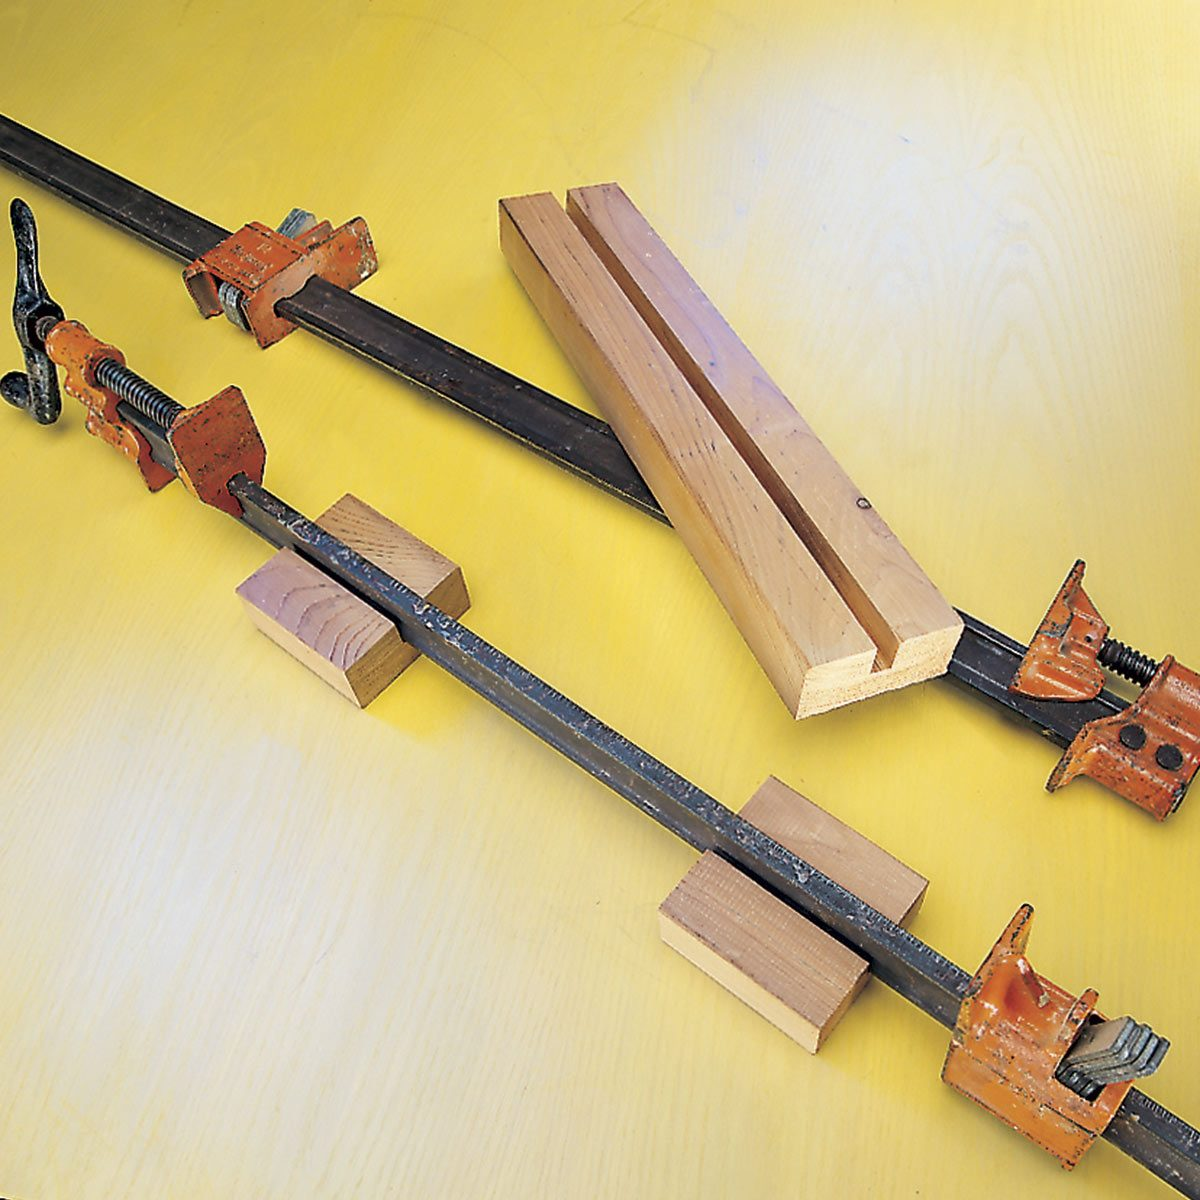 glue clamp stabilizers